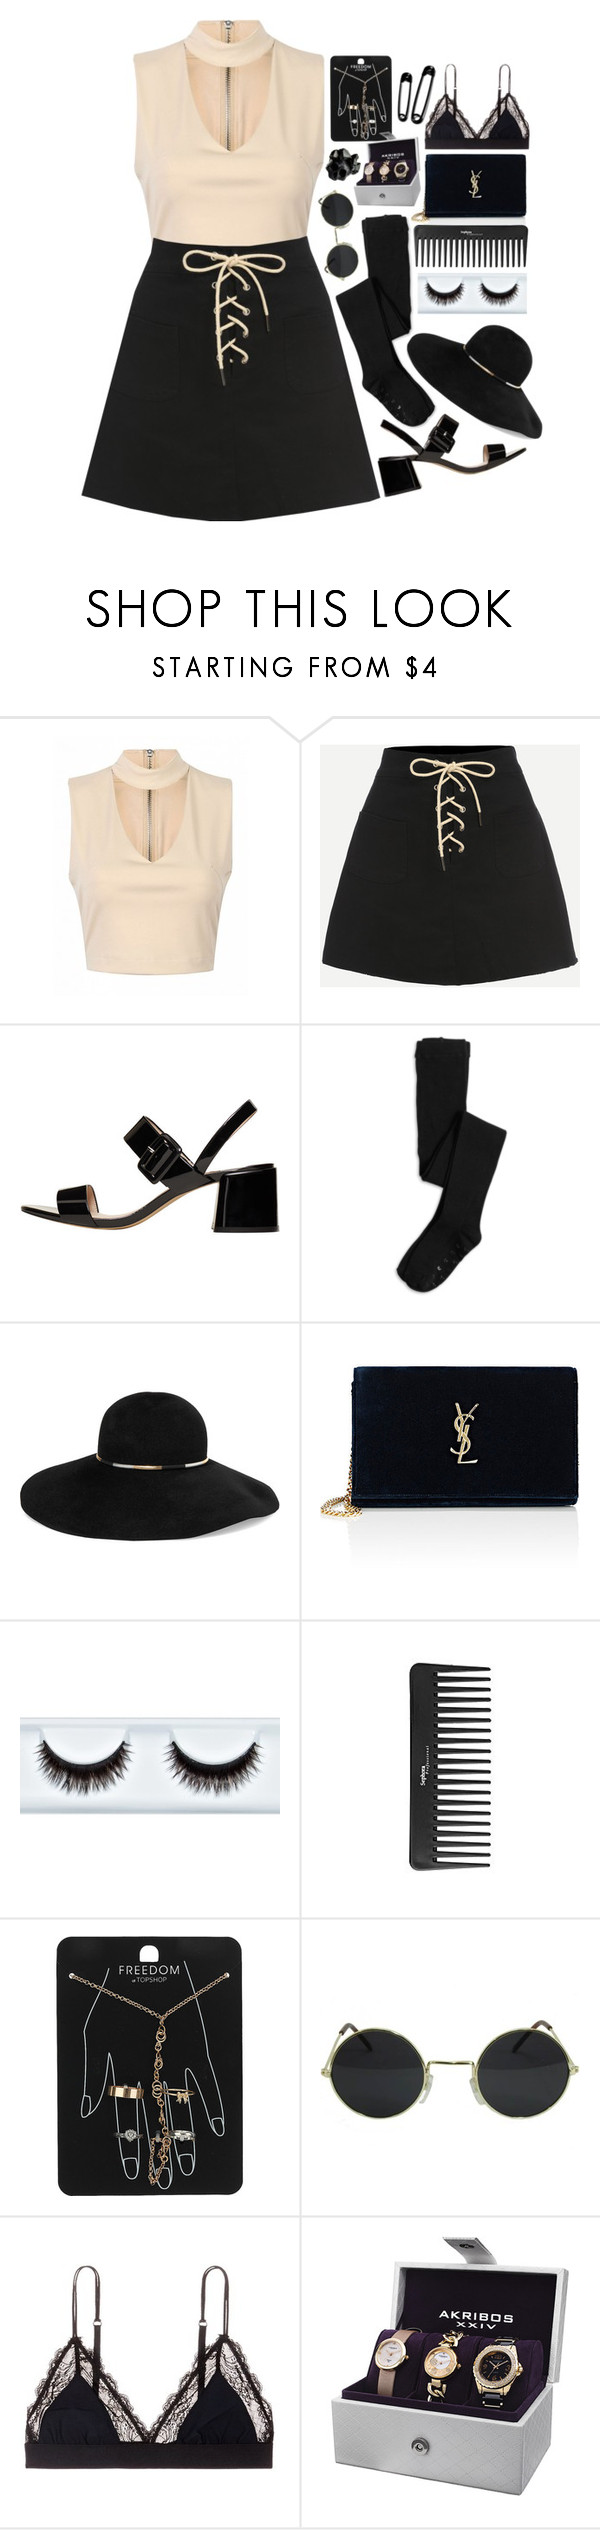 """Untitled #657"" by wendyvc ❤ liked on Polyvore featuring MANGO, Eugenia Kim, Yves Saint Laurent, Sephora Collection, Topshop, LoveStories, Akribos XXIV and Macabre Gadgets"